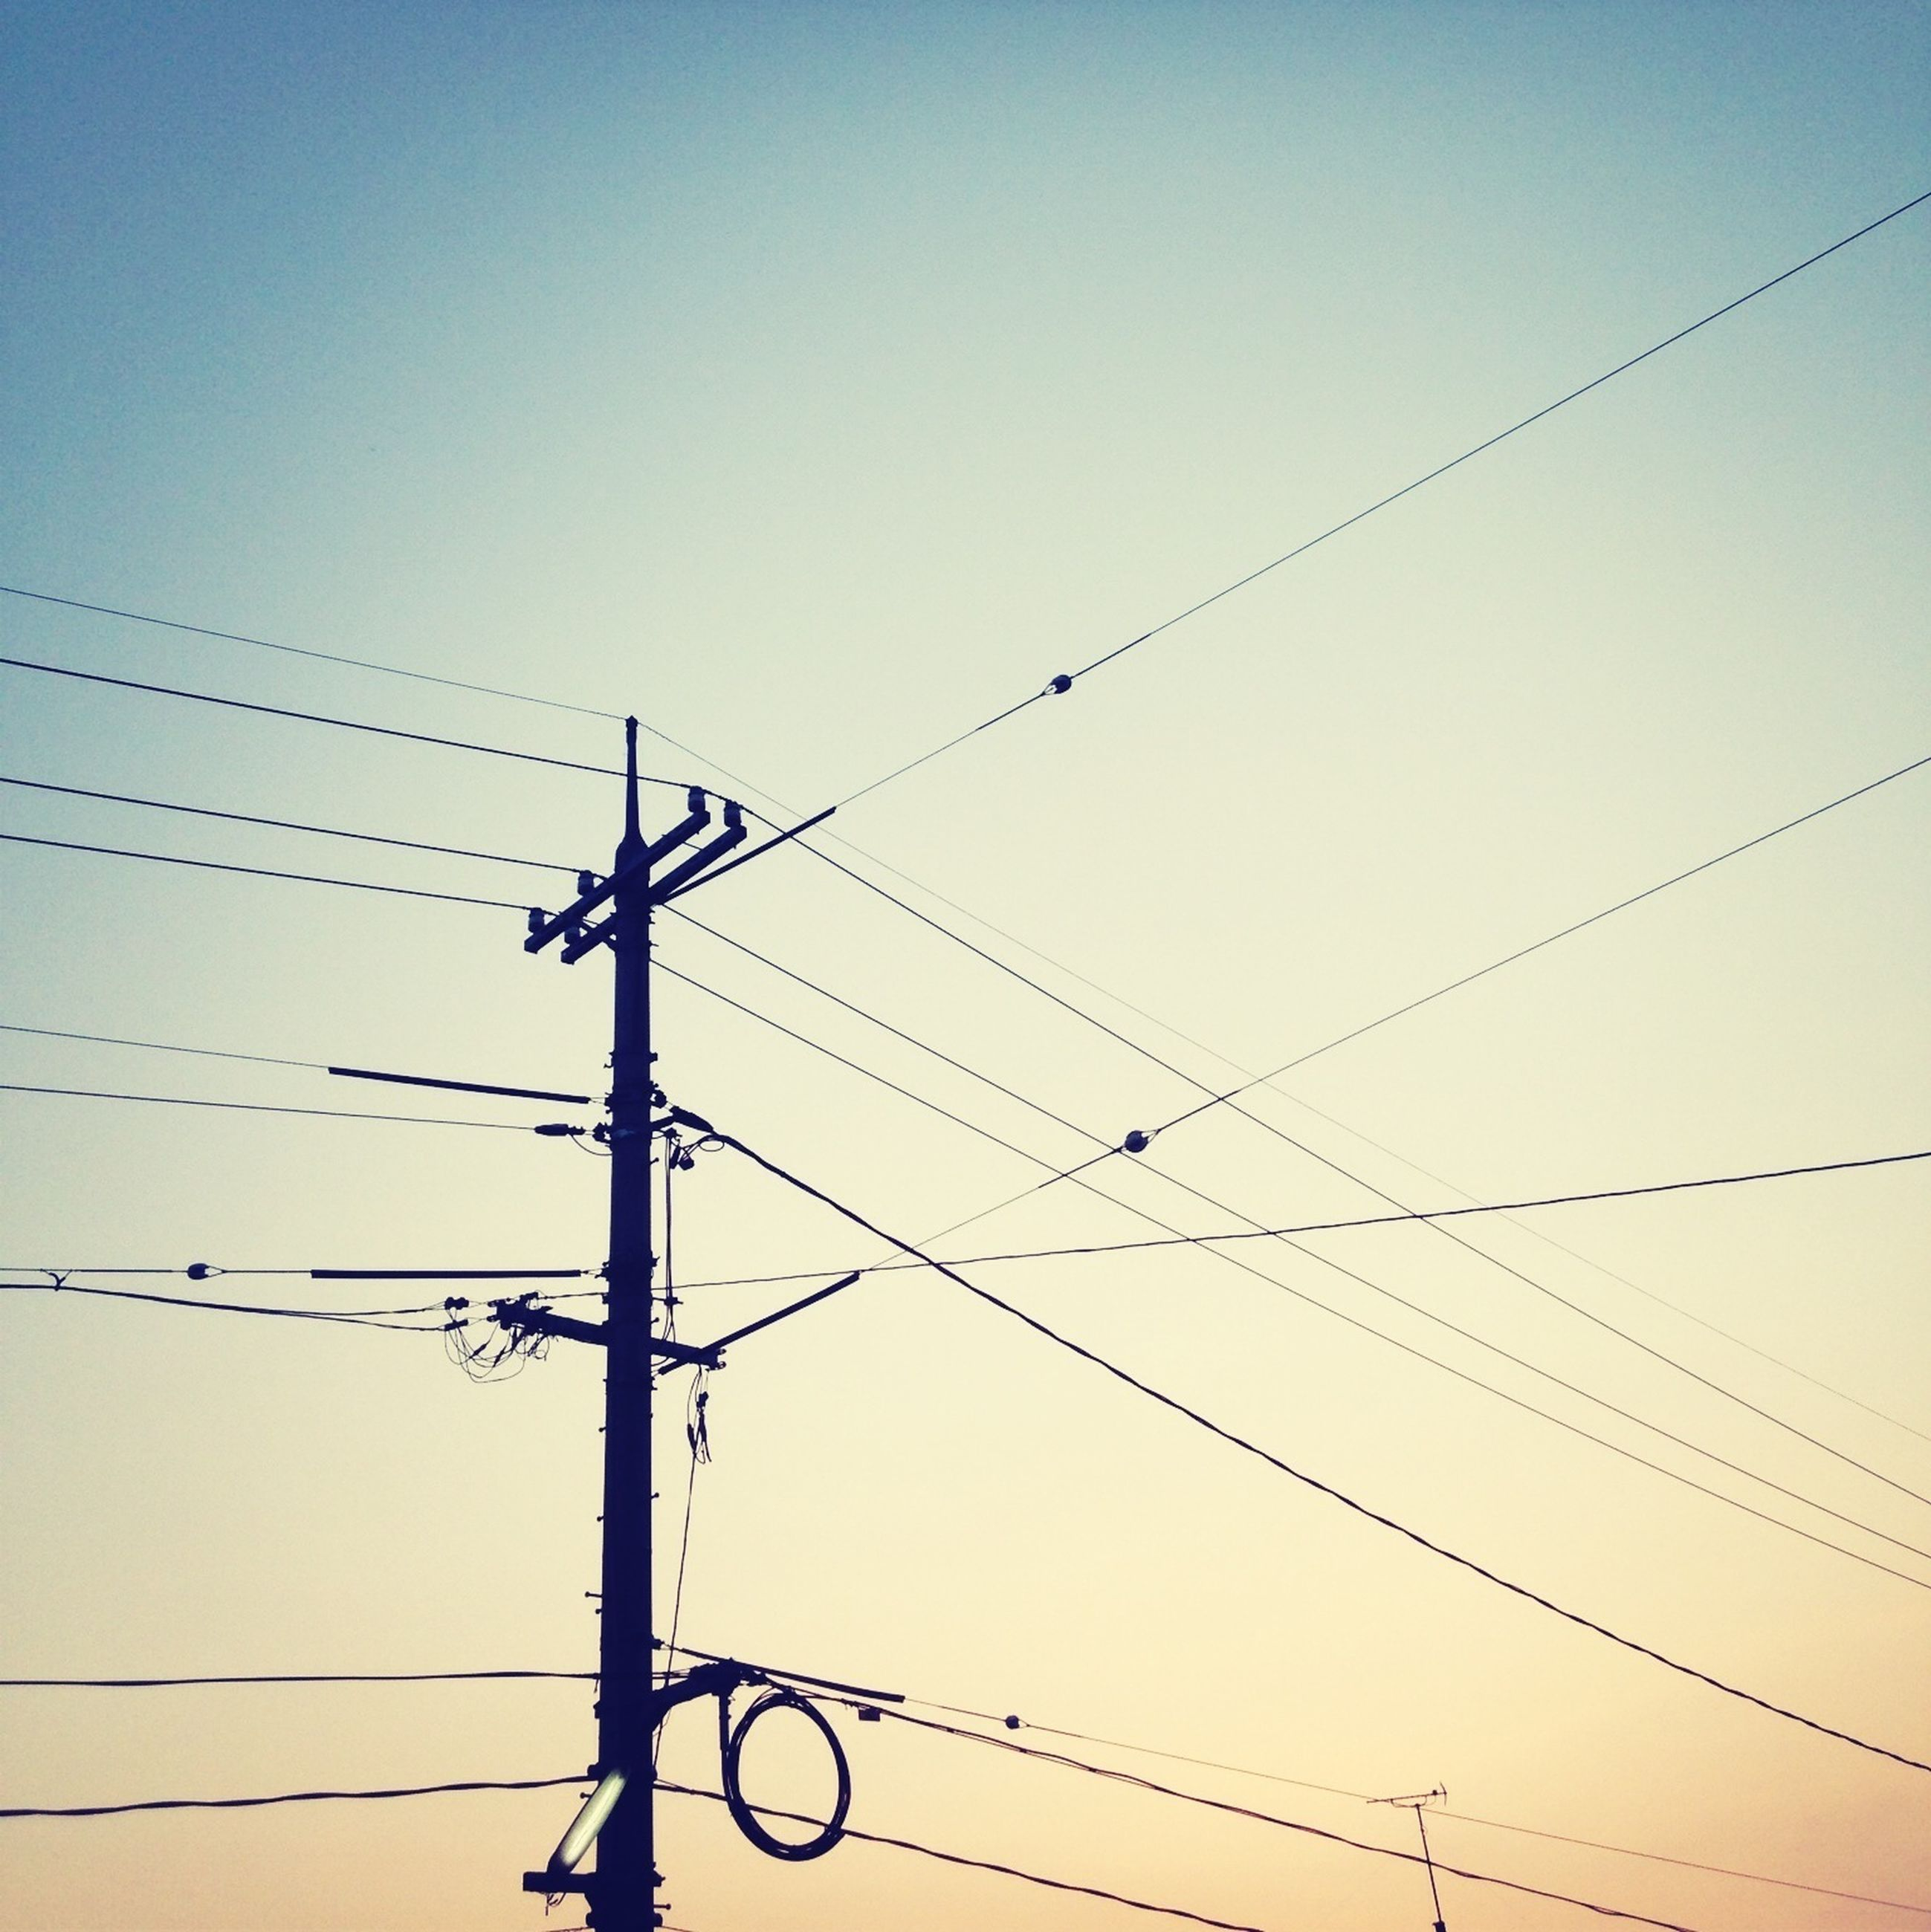 power line, low angle view, cable, bird, power supply, connection, electricity pylon, clear sky, electricity, animal themes, animals in the wild, silhouette, wildlife, power cable, perching, fuel and power generation, technology, copy space, sky